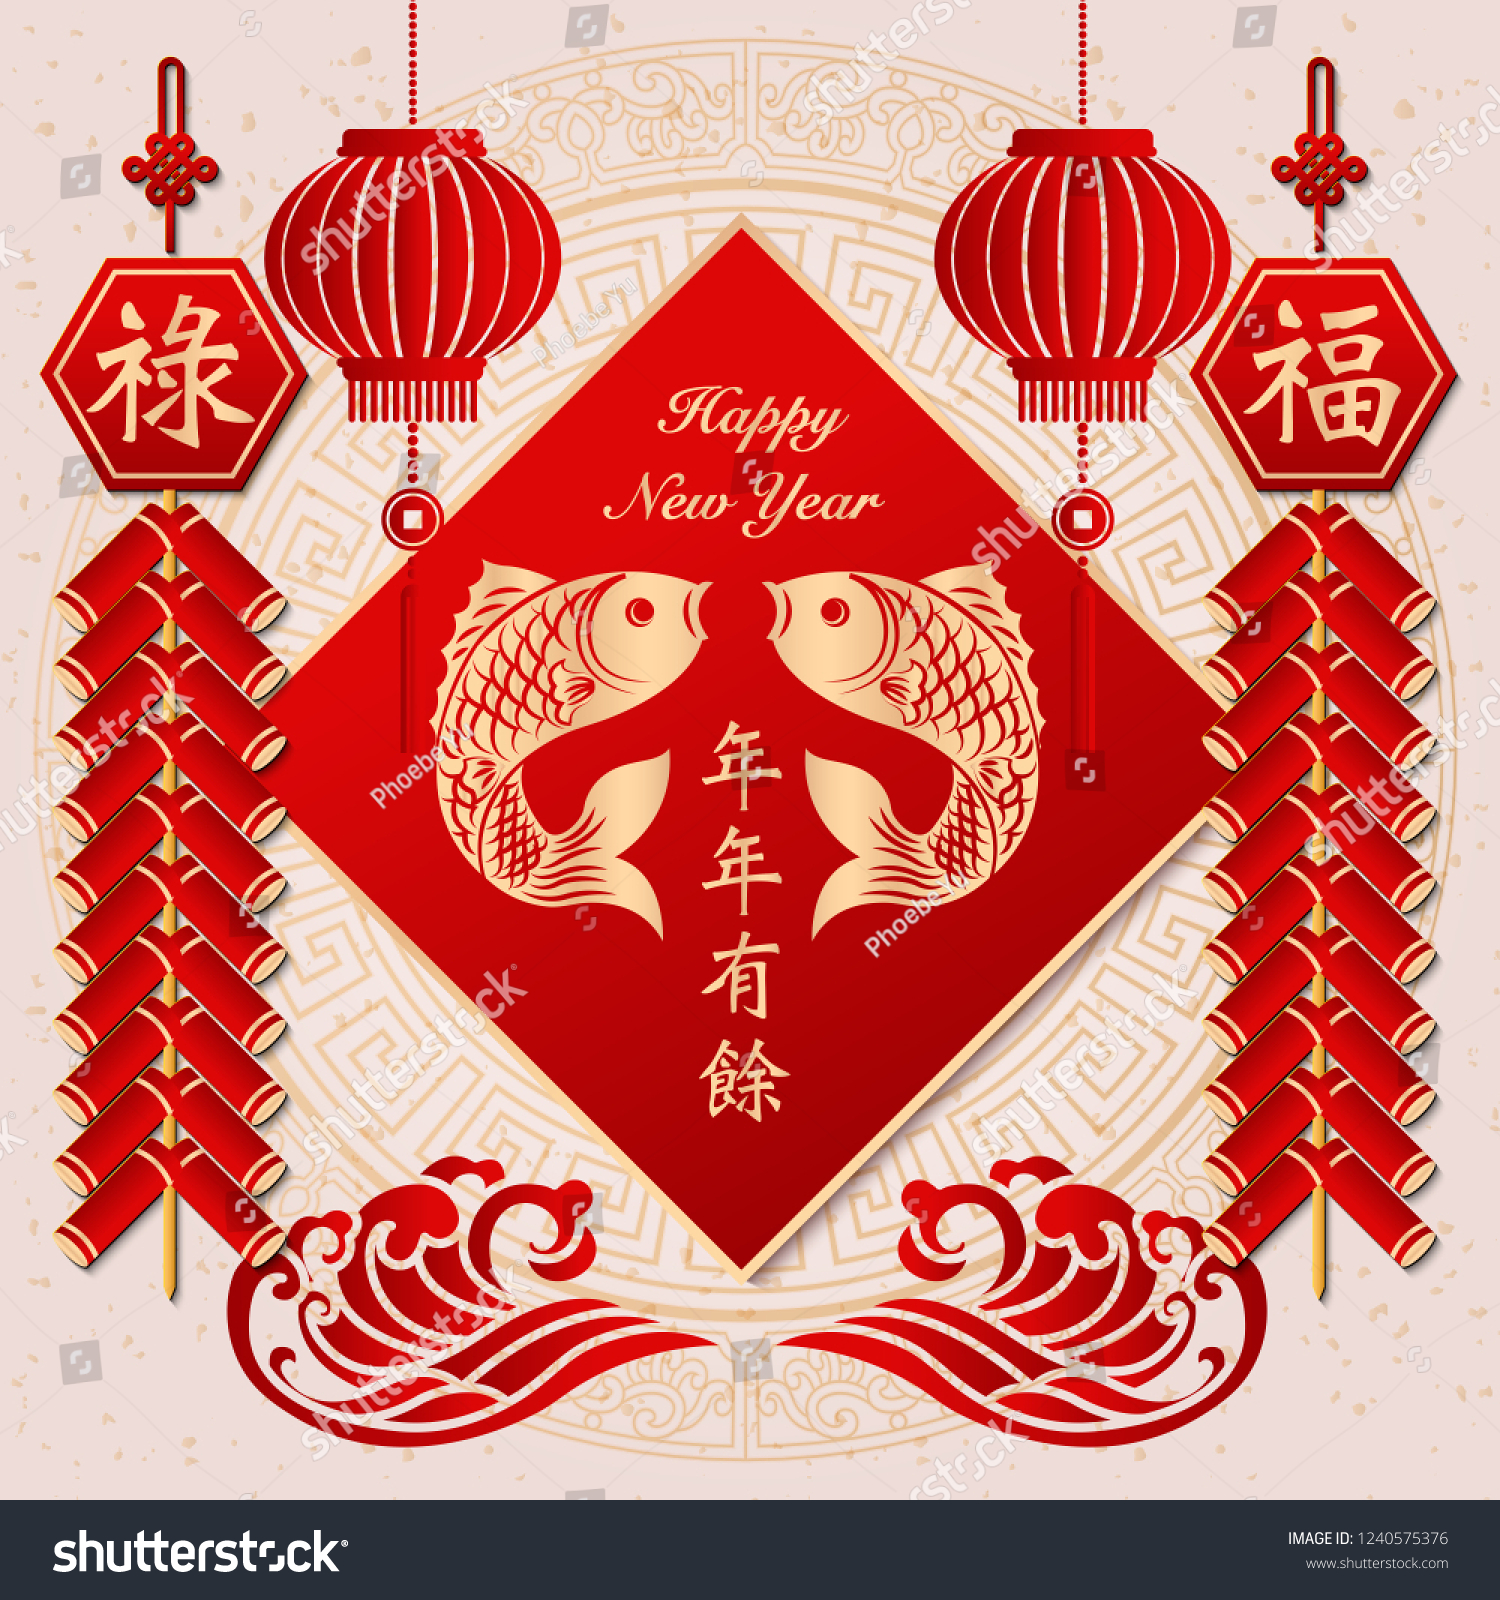 Happy Chinese New Year Retro Elegant Stock Vector (Royalty